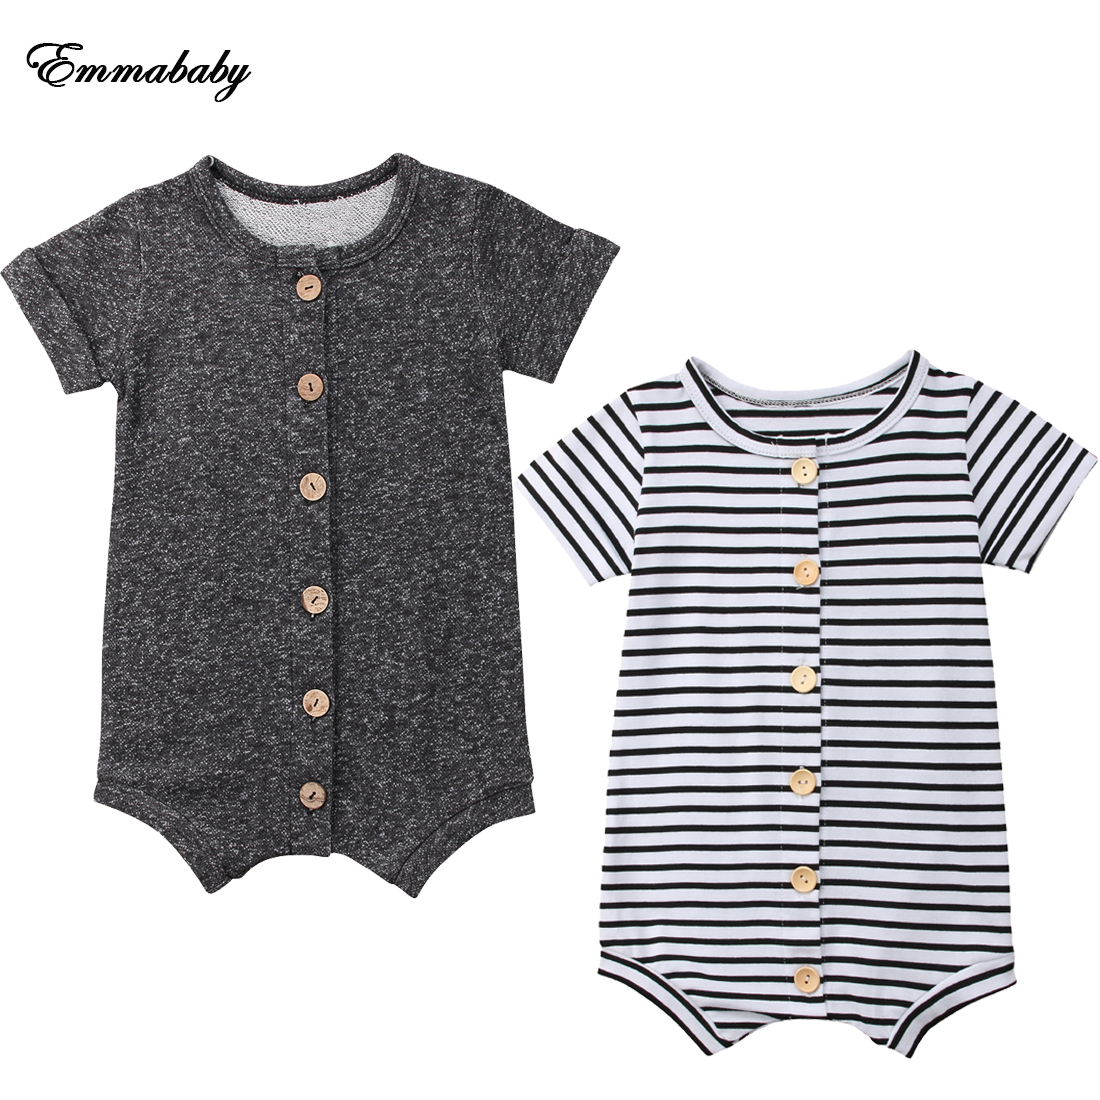 NEW 2020 Newborn Infant Baby Boy Girl Romper Bodysuit Jumpsuit Outfits Overall Clothes